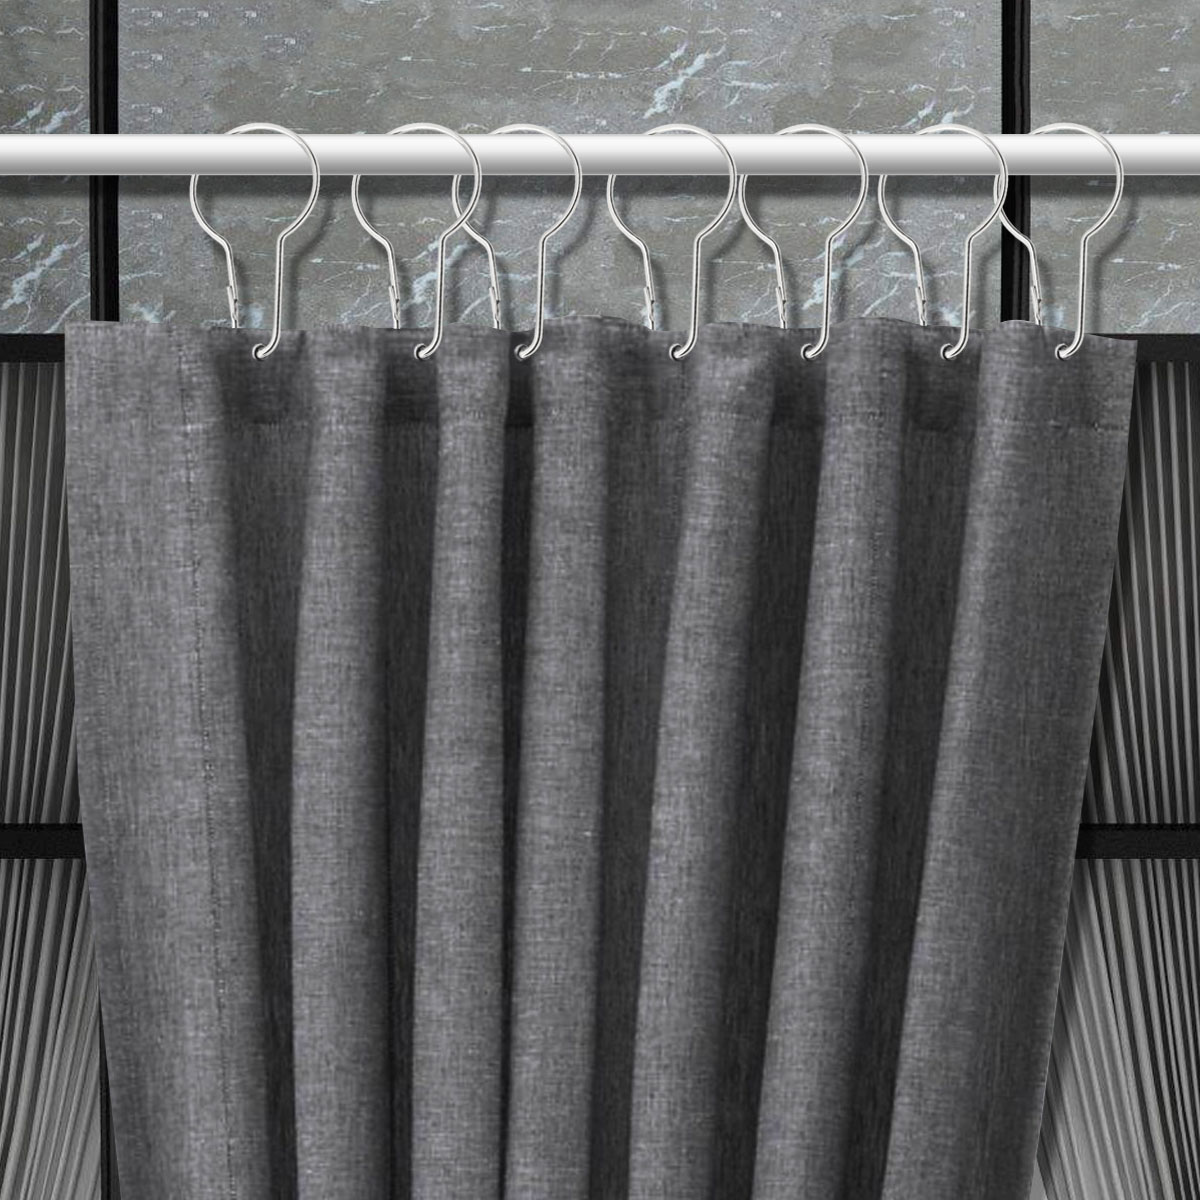 Ounona 12pc Shower Curtain Hooks Glide Roller Rustproof Stainless Steel With Clips Polished Chrome For Bathroom Rods Curtains A2